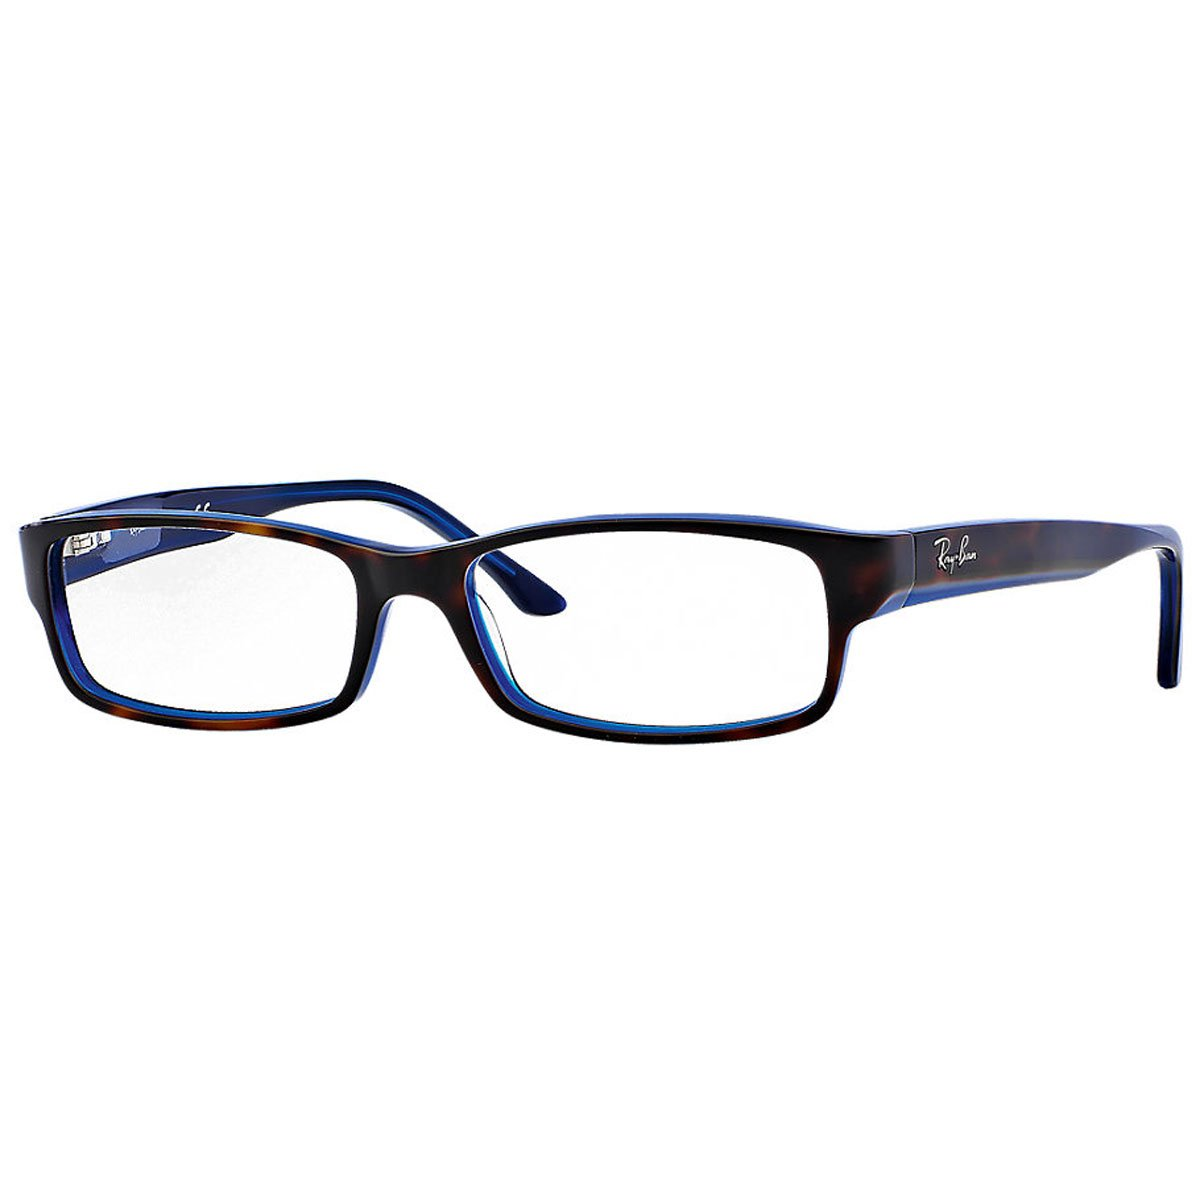 Amazon.com: Ray-Ban RX5114 Eyeglasses Top Havana On Blue 52mm: Shoes